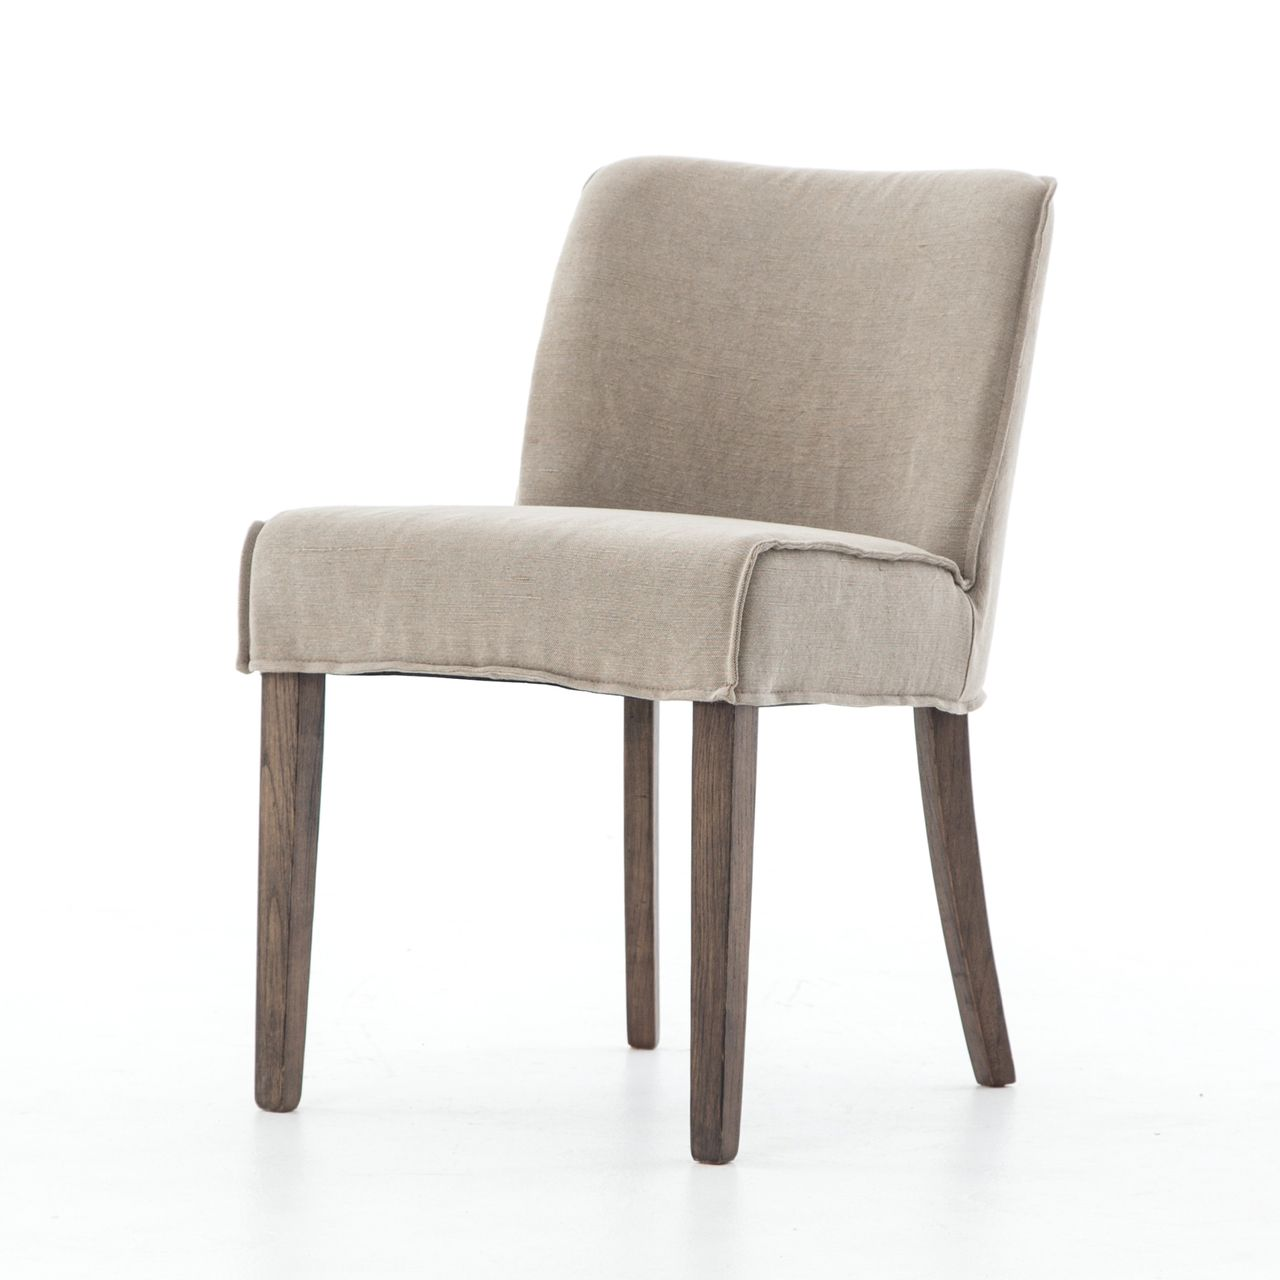 urban-rustic upholstered dining side chair   urban rustic, side